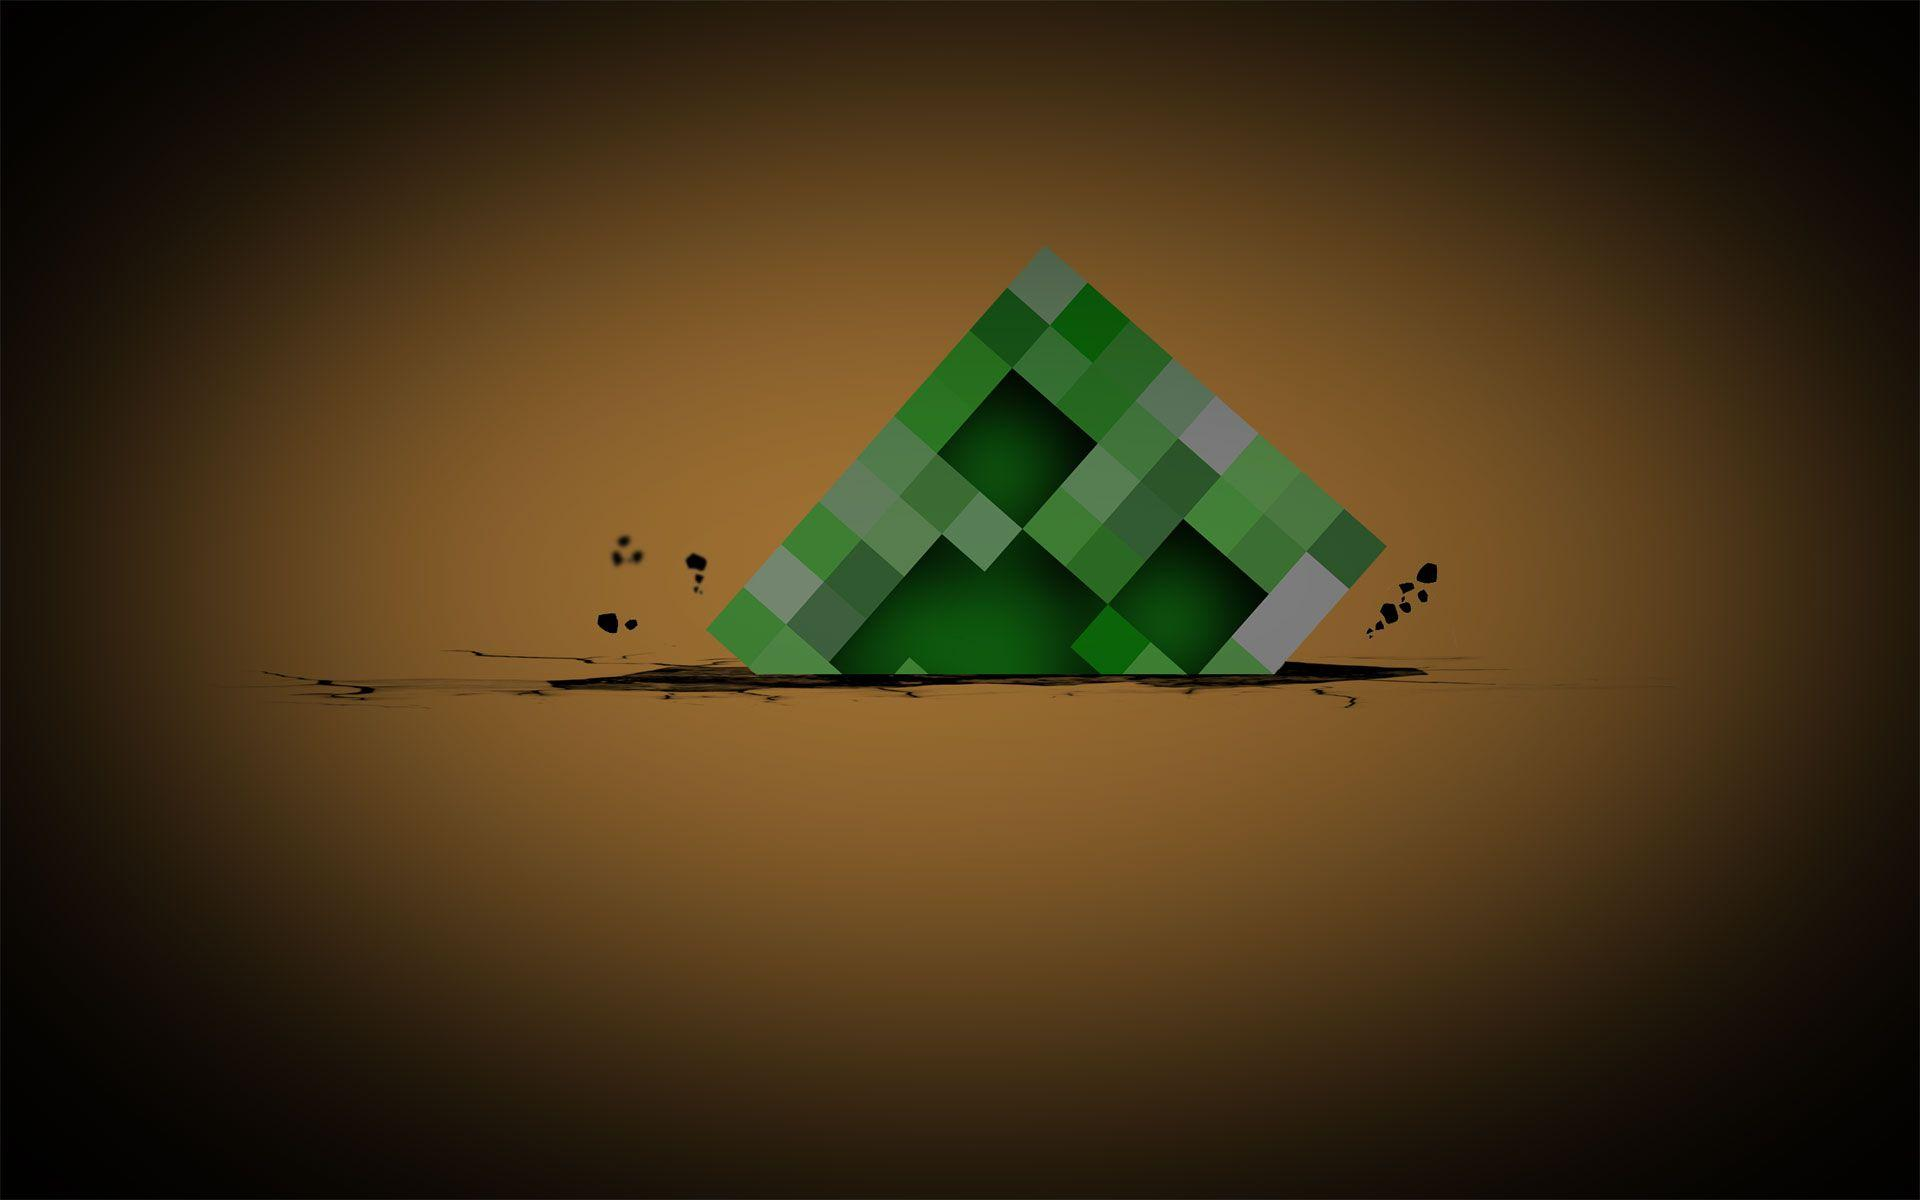 Creeper Face Grave Minecraft, Games Wallpaper, hd phone wallpapers ...